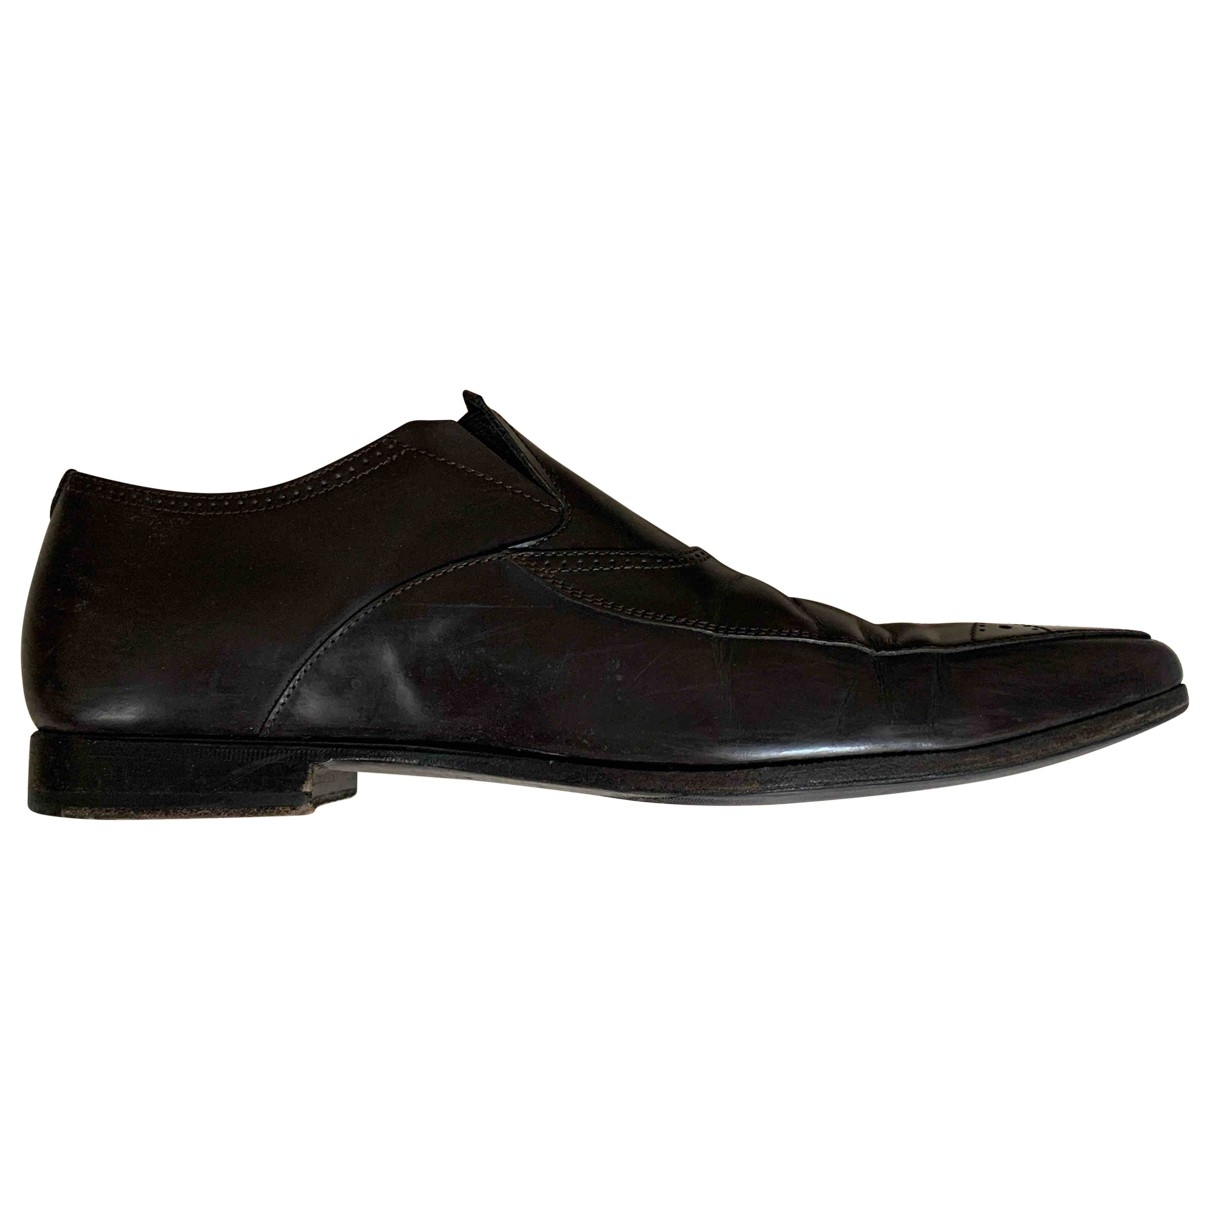 Yves Saint Laurent - Derbies   pour homme en cuir - marron